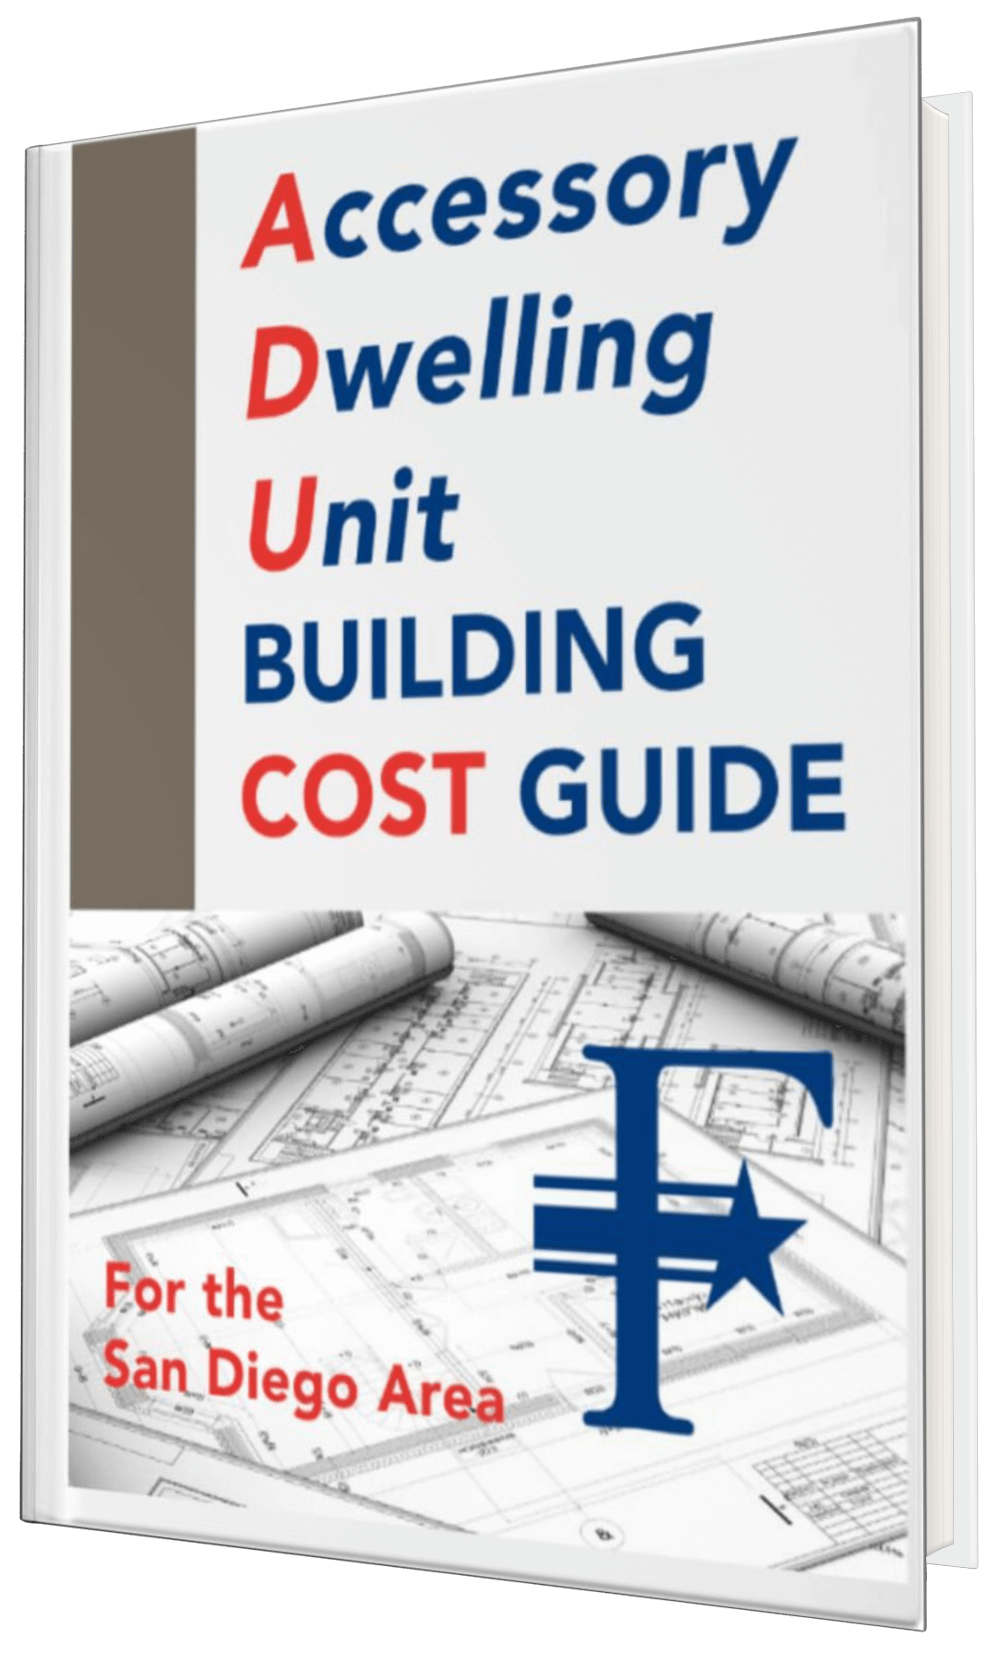 Accessory Dwelling Unit Building Cost Guide